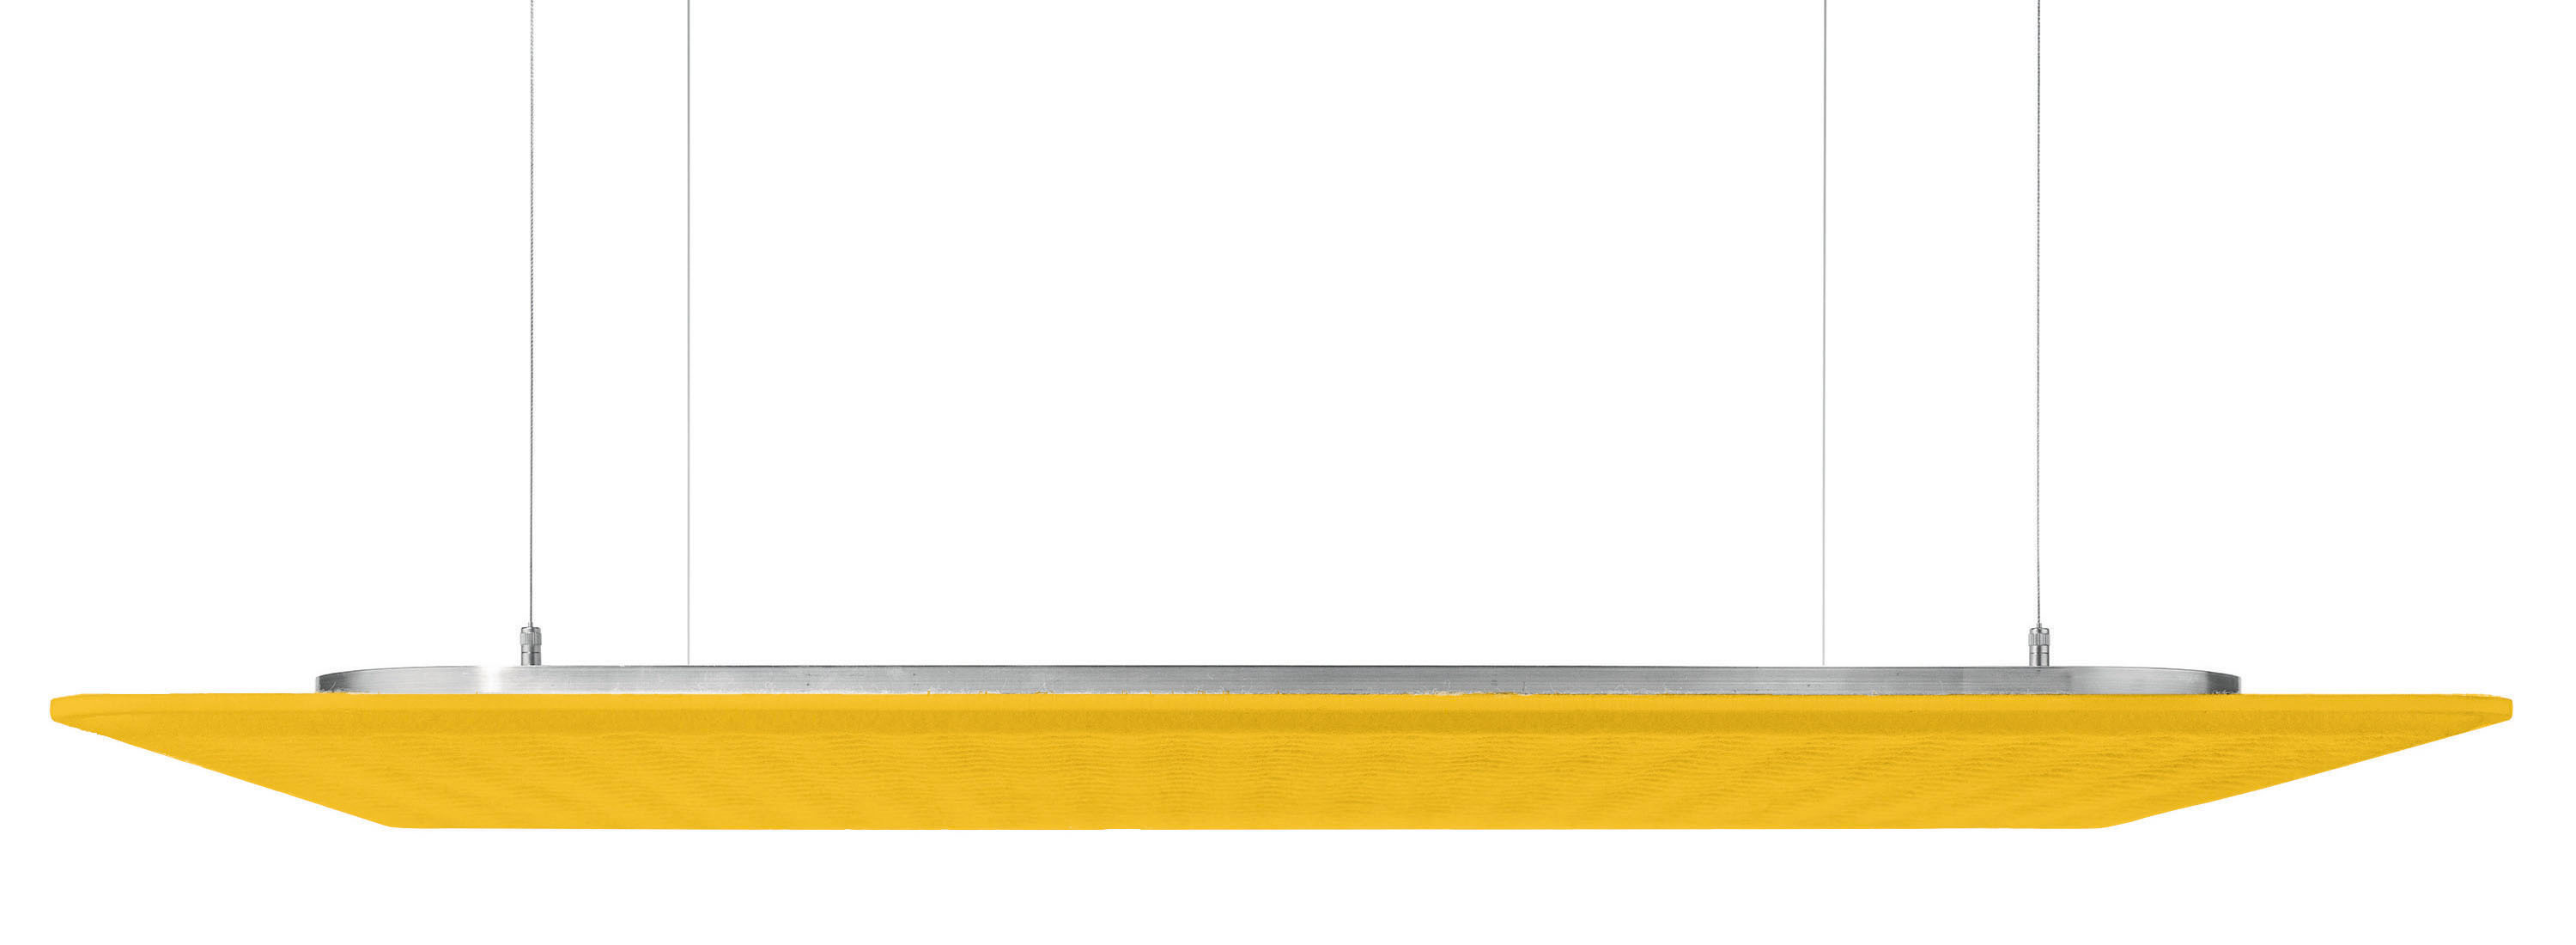 Rossoacoustic PAD Q 900 Basic, 900 x 900 x 25 mm, yellow field